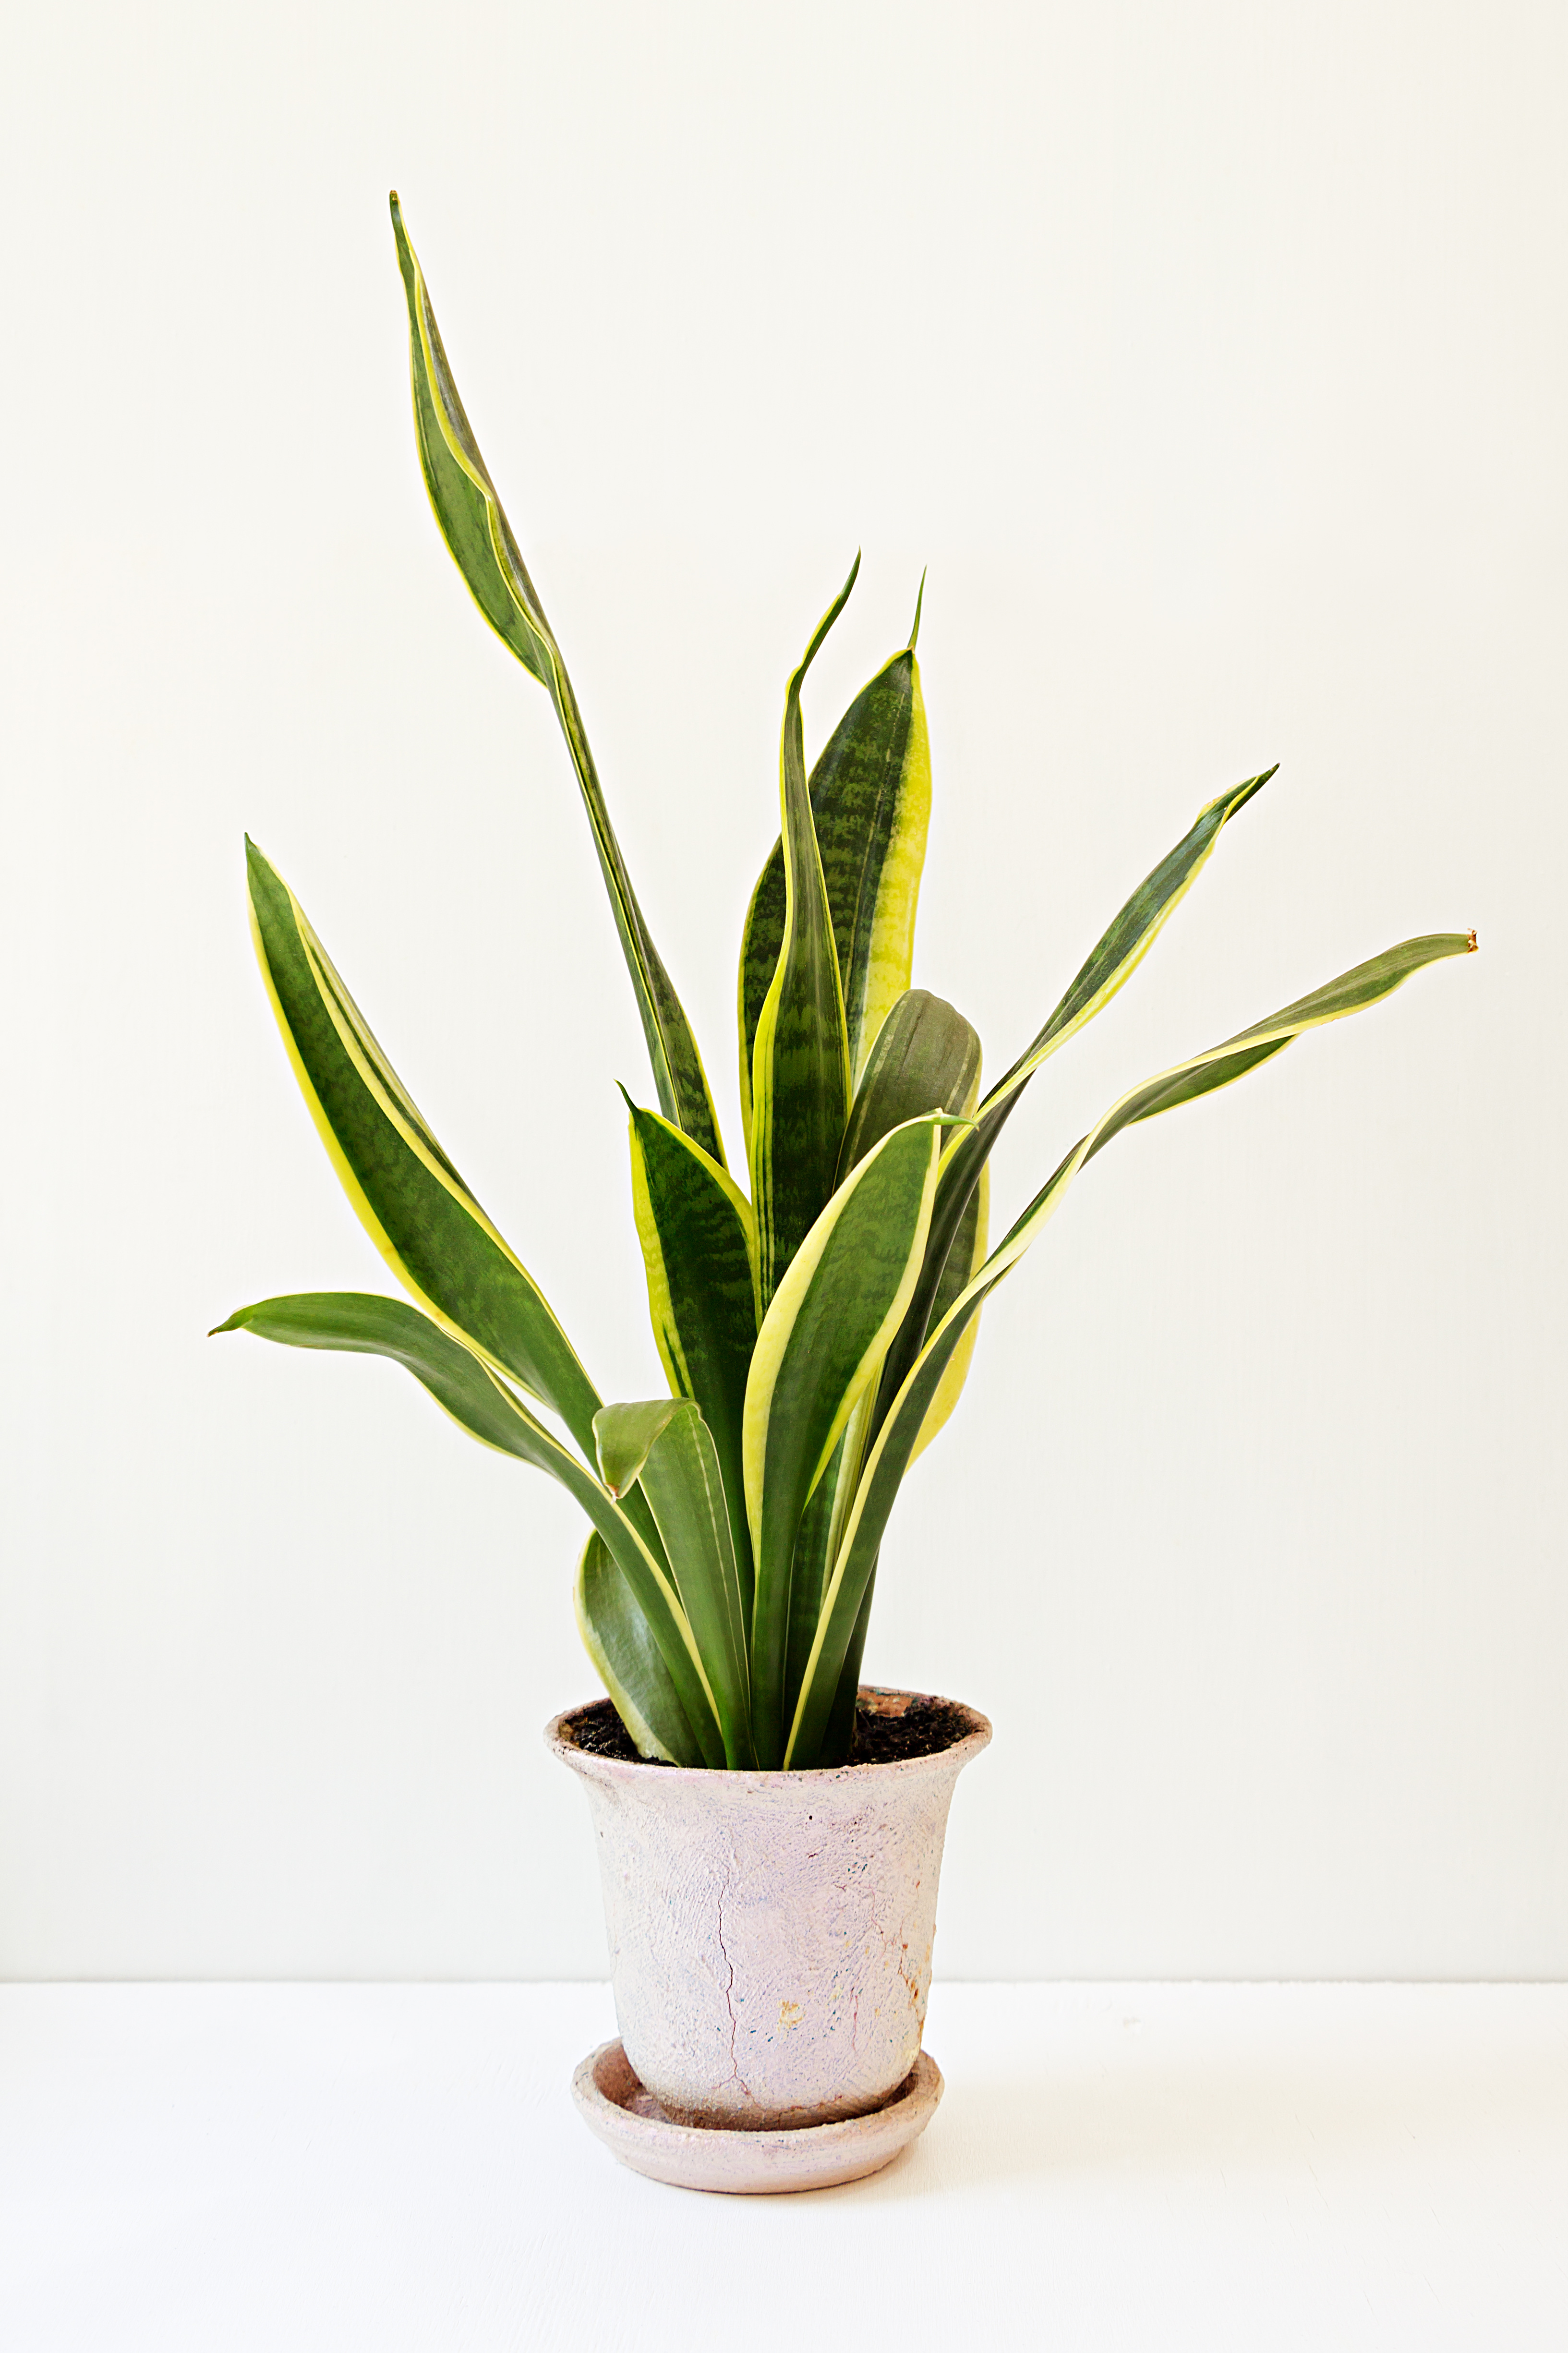 Air Purifying Plants For Bedroom: 25 Air Purifying Plants!